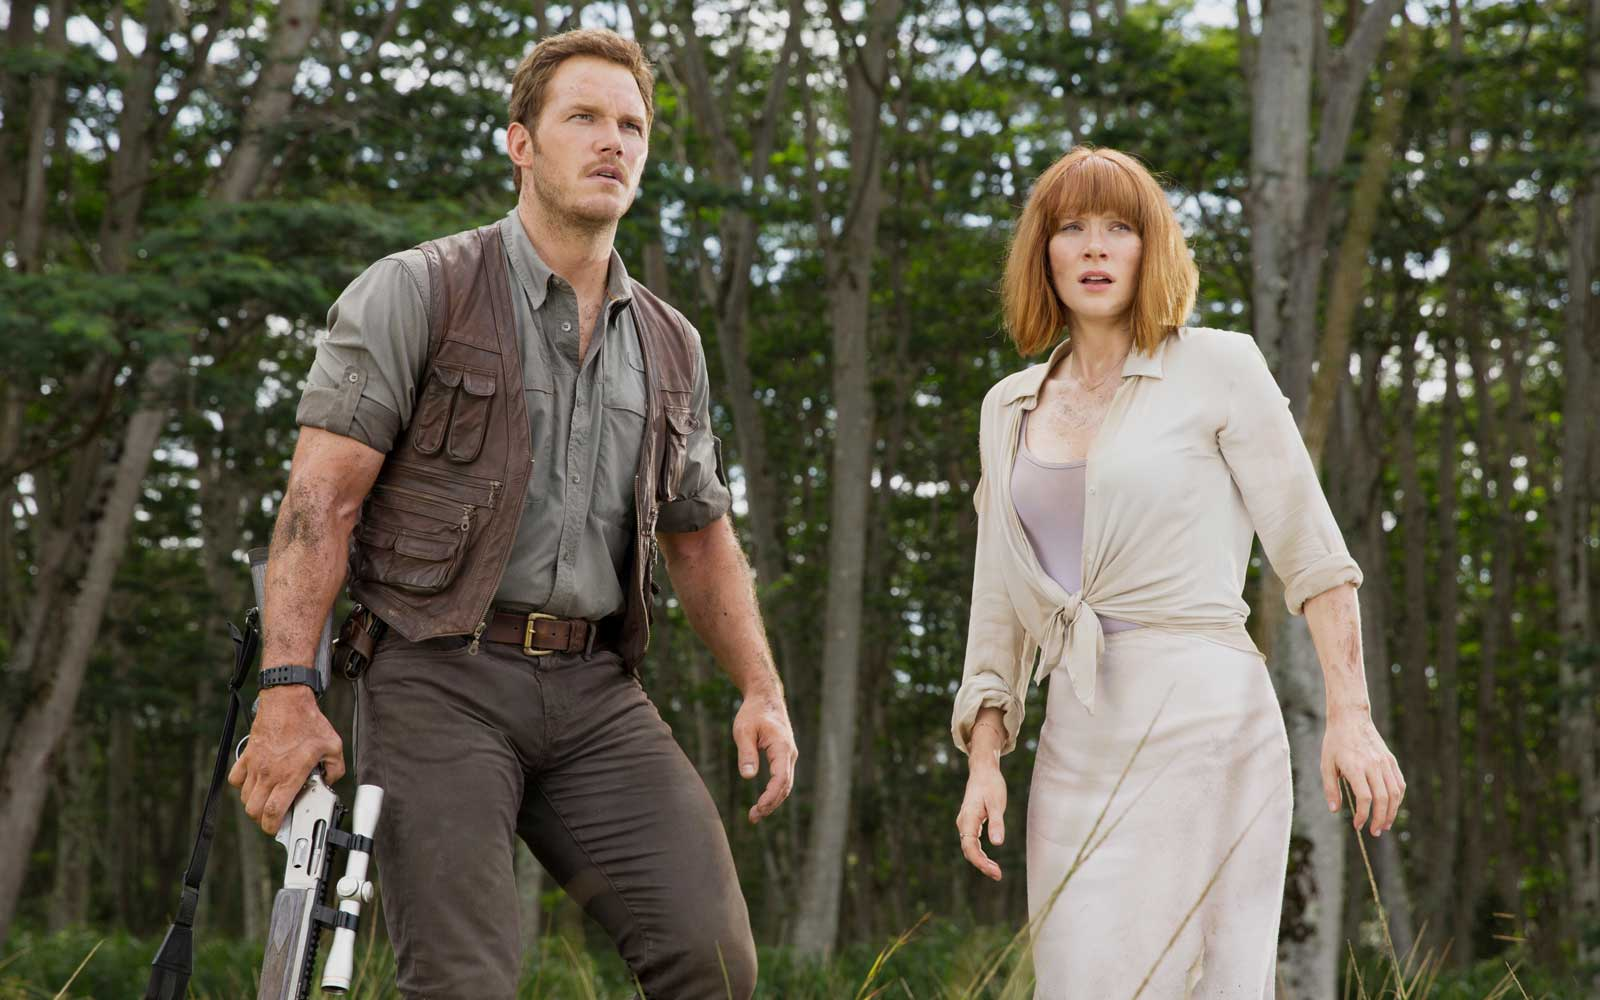 Still from Jurassic World